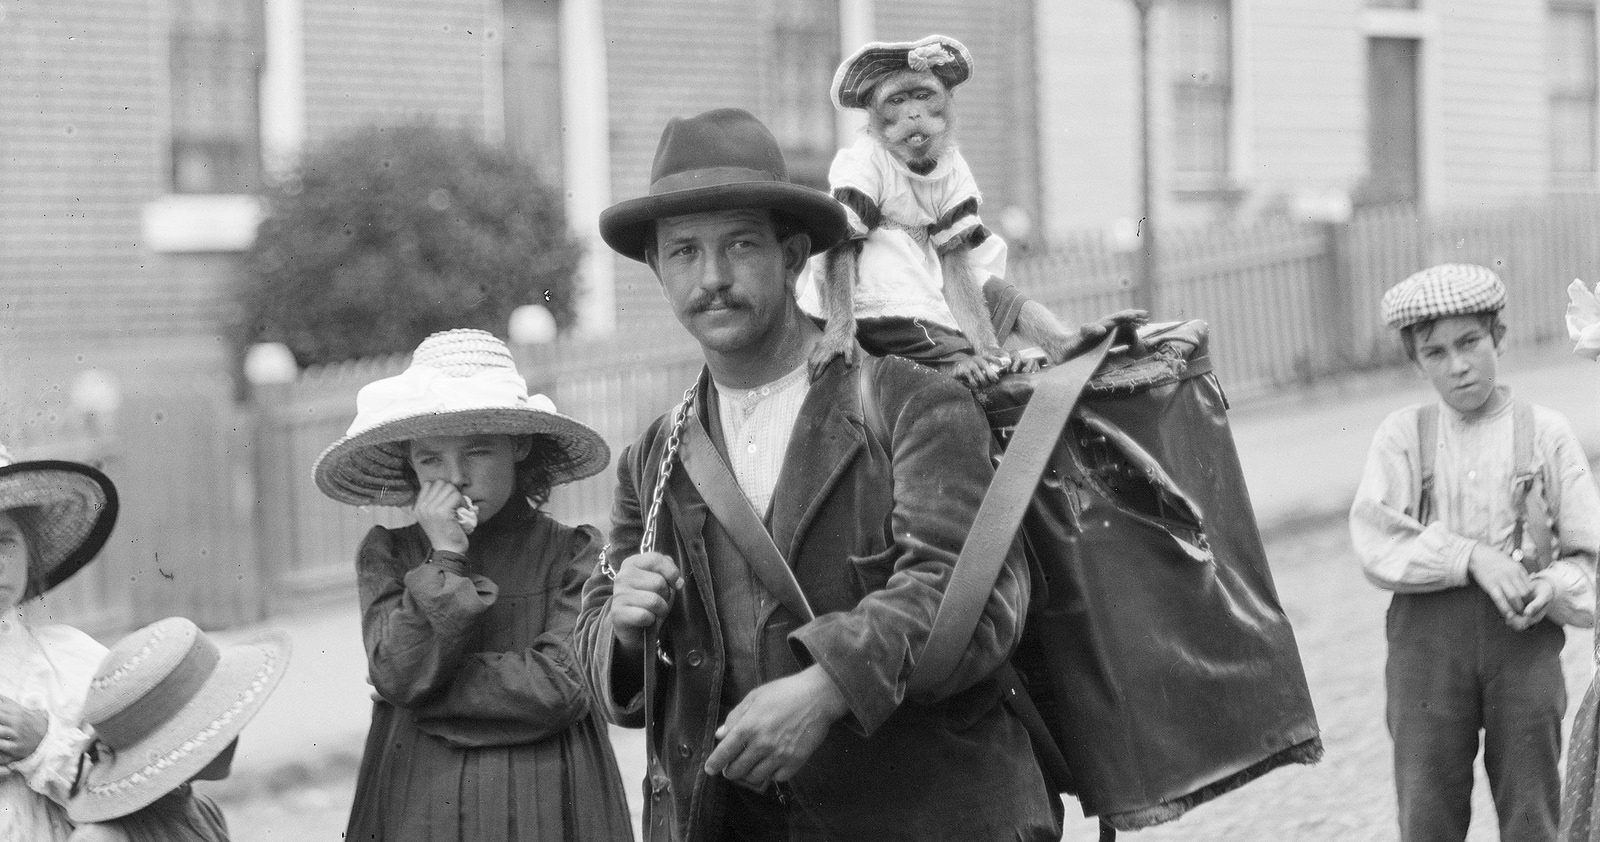 TItle: Man with Monkey and Children (c1900) from the Tasmanian Archive and Heritage Office: Detail from NS1013-1-1269.